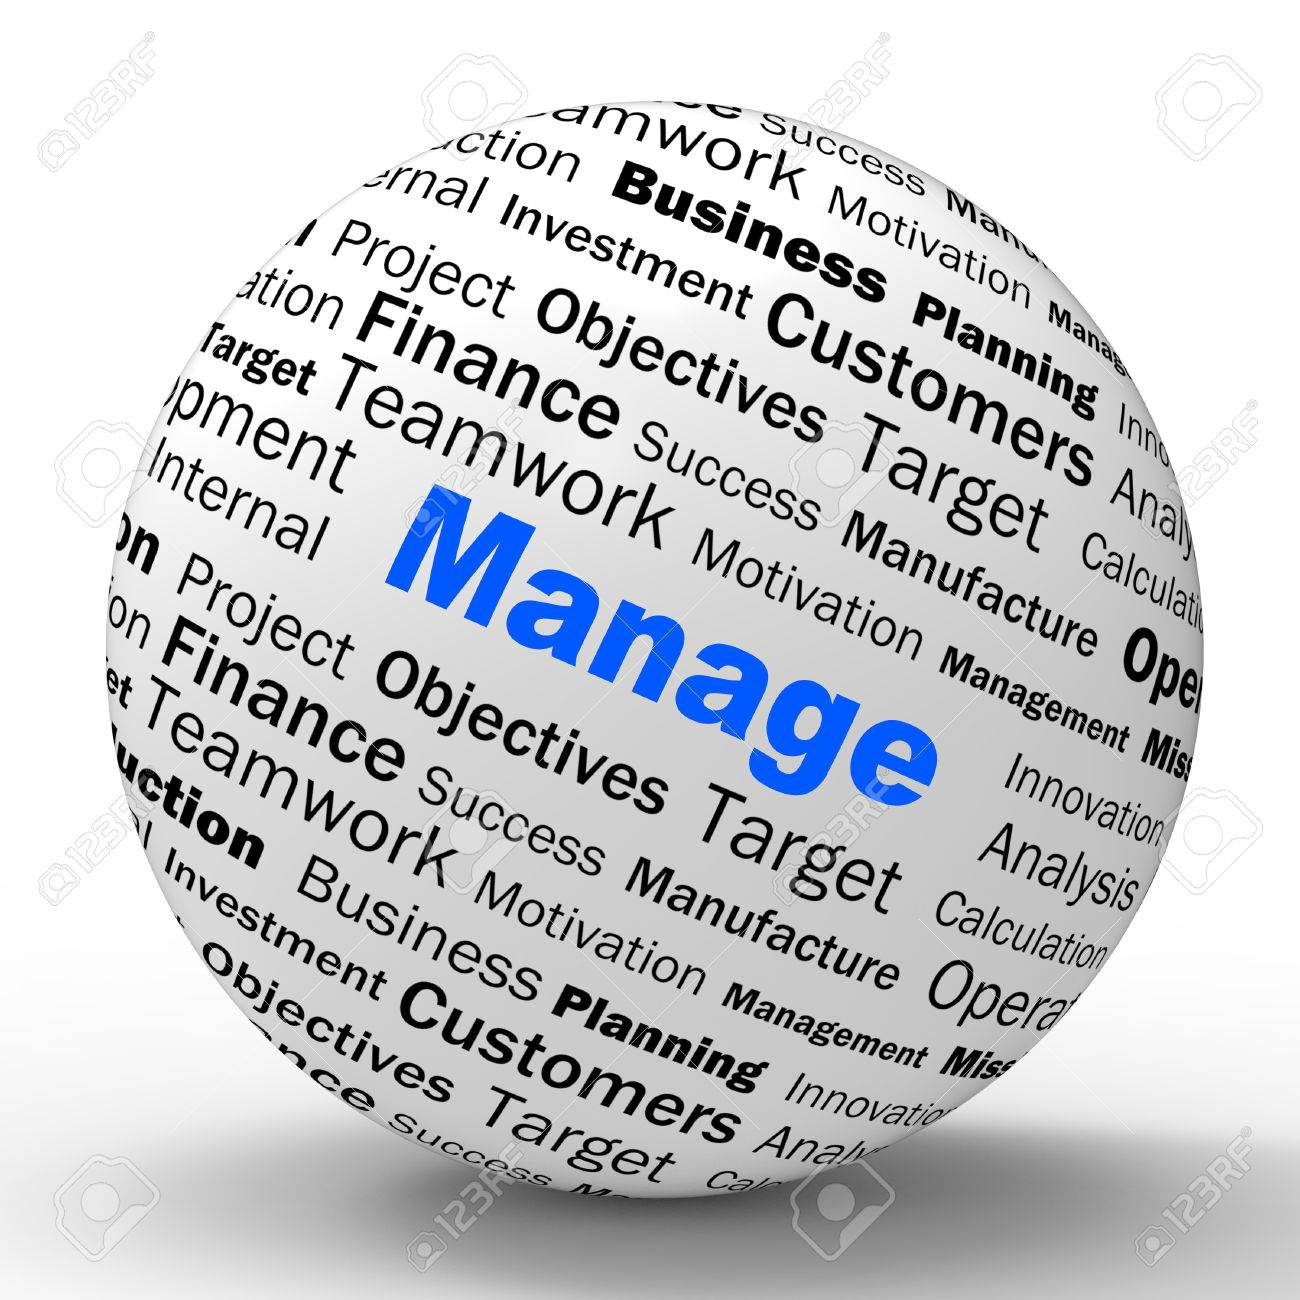 manage sphere definition meaning business administration or